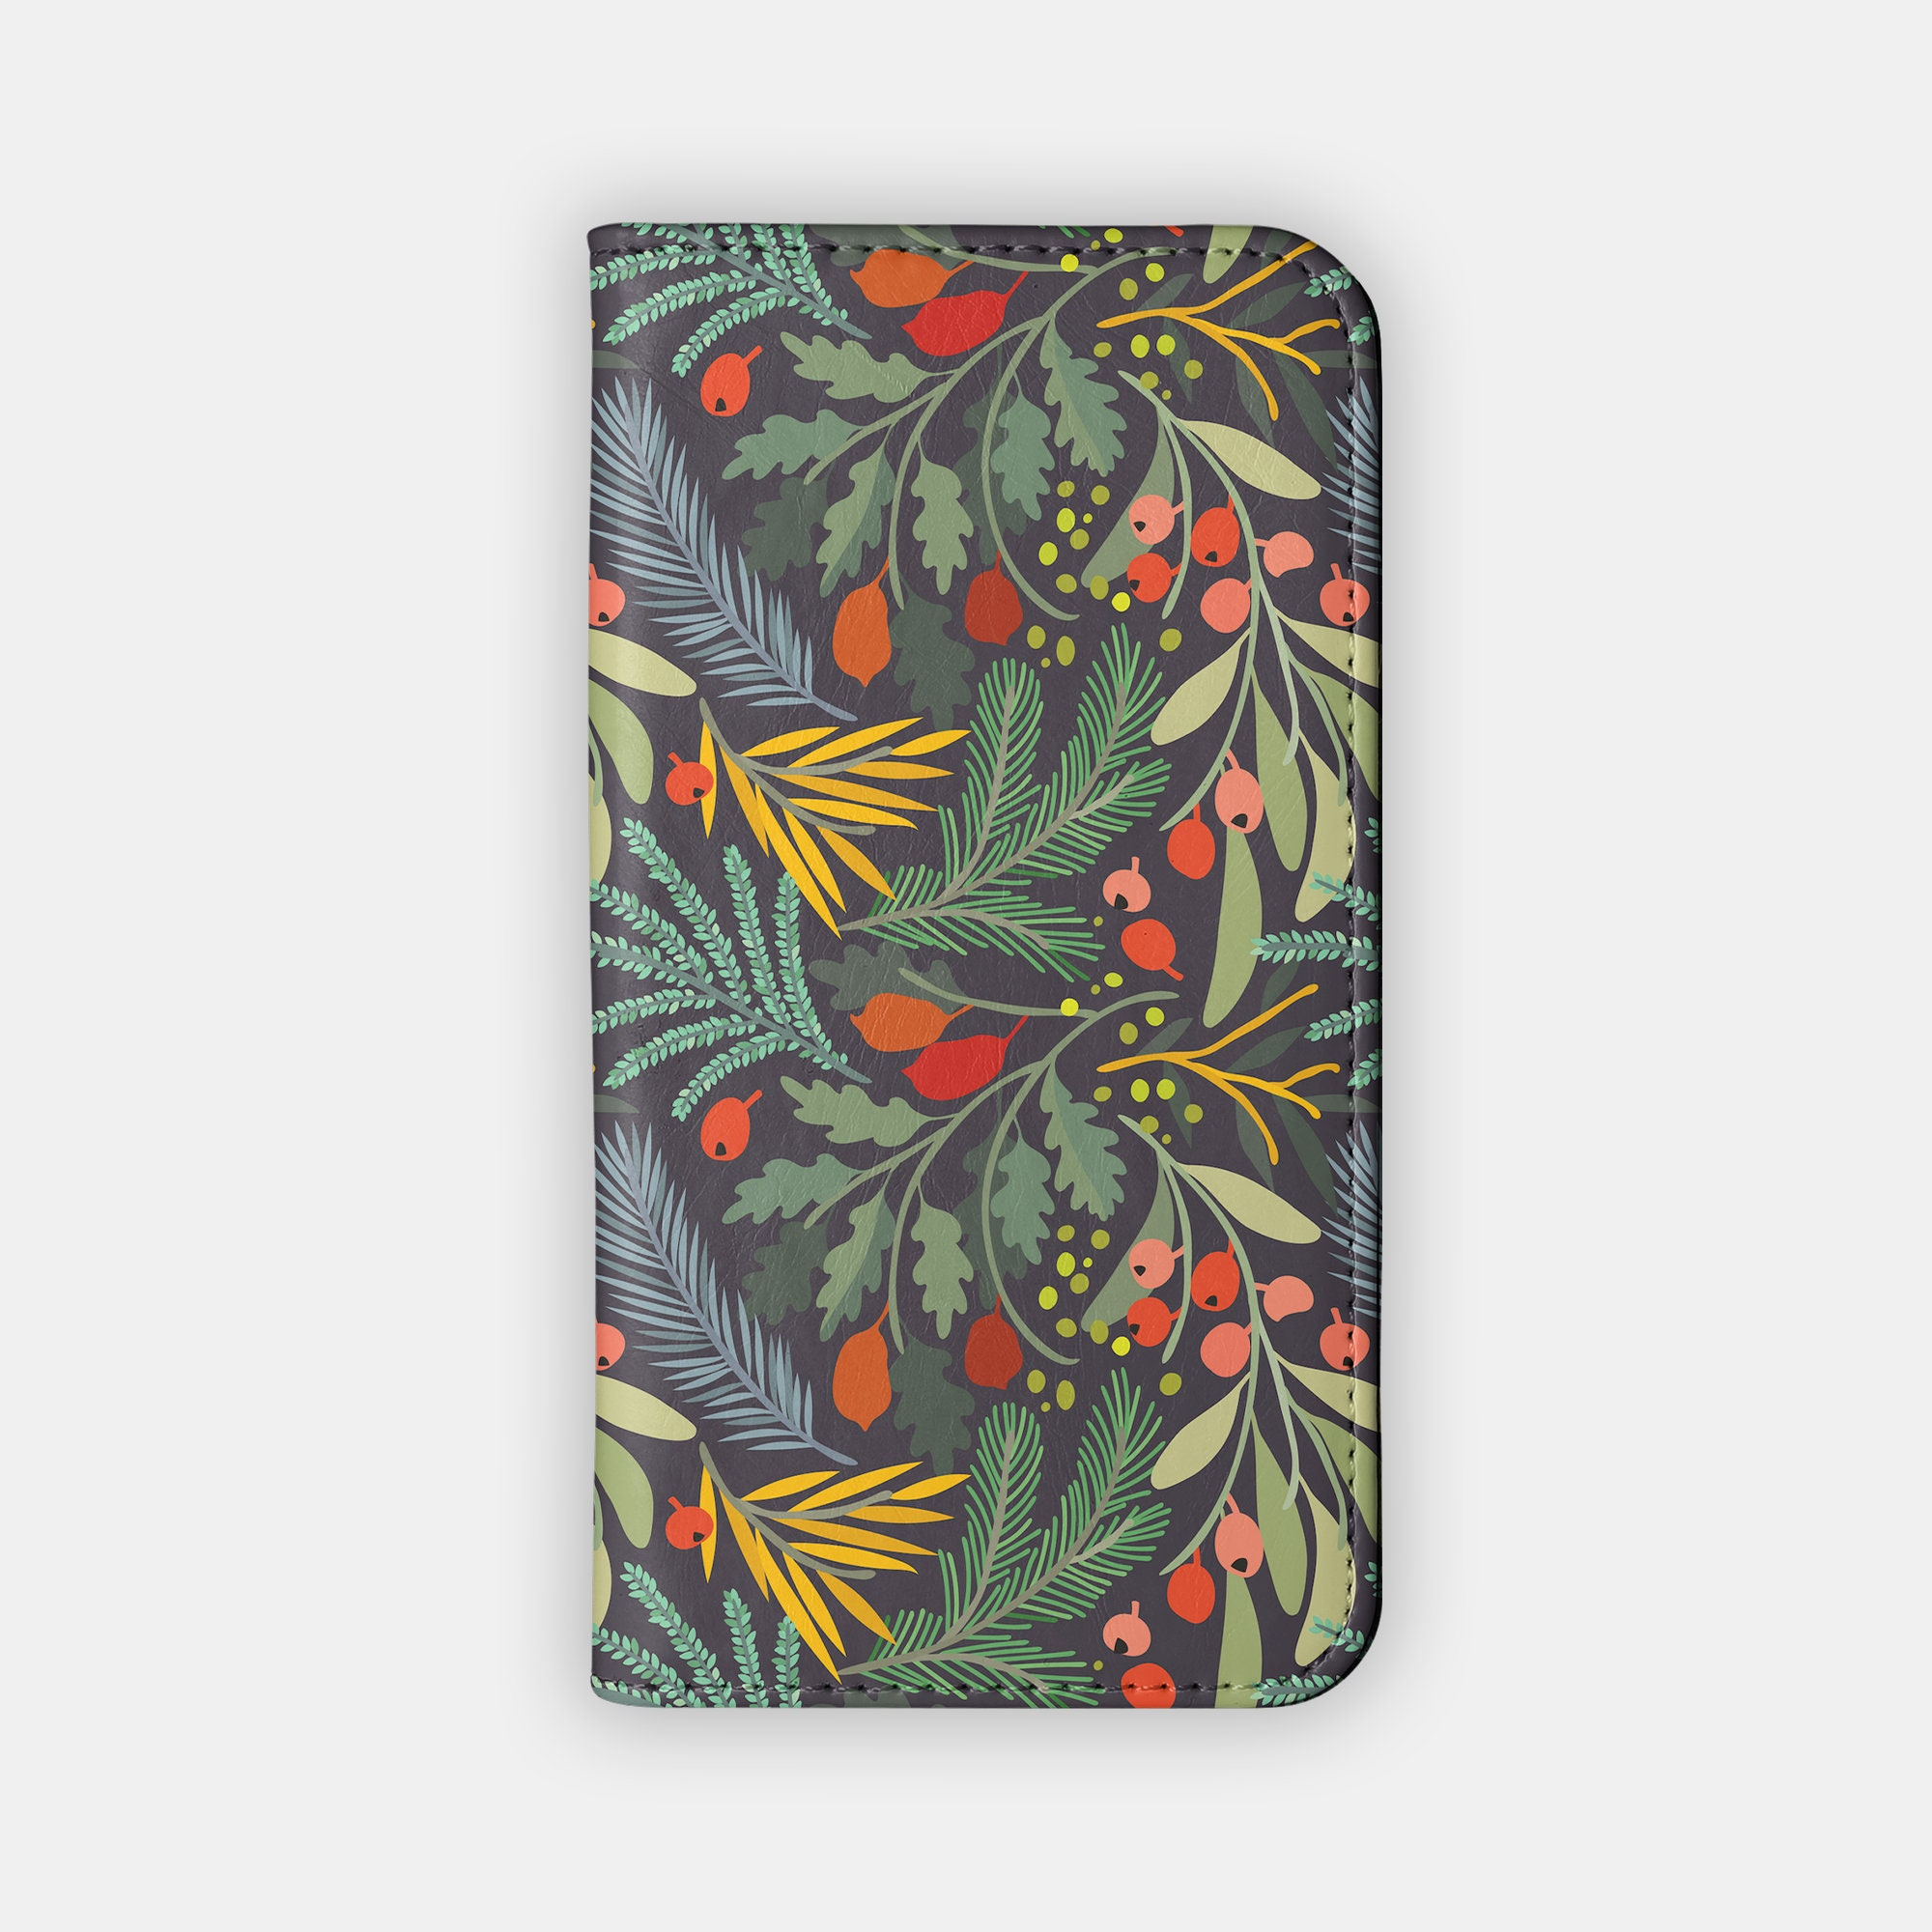 Galaxy S10e Available for Samsung Galaxy S21 Galaxy S9 Galaxy S20 Galaxy S10 AUTUMN STROLL Galaxy Folio Wallet Galaxy S8